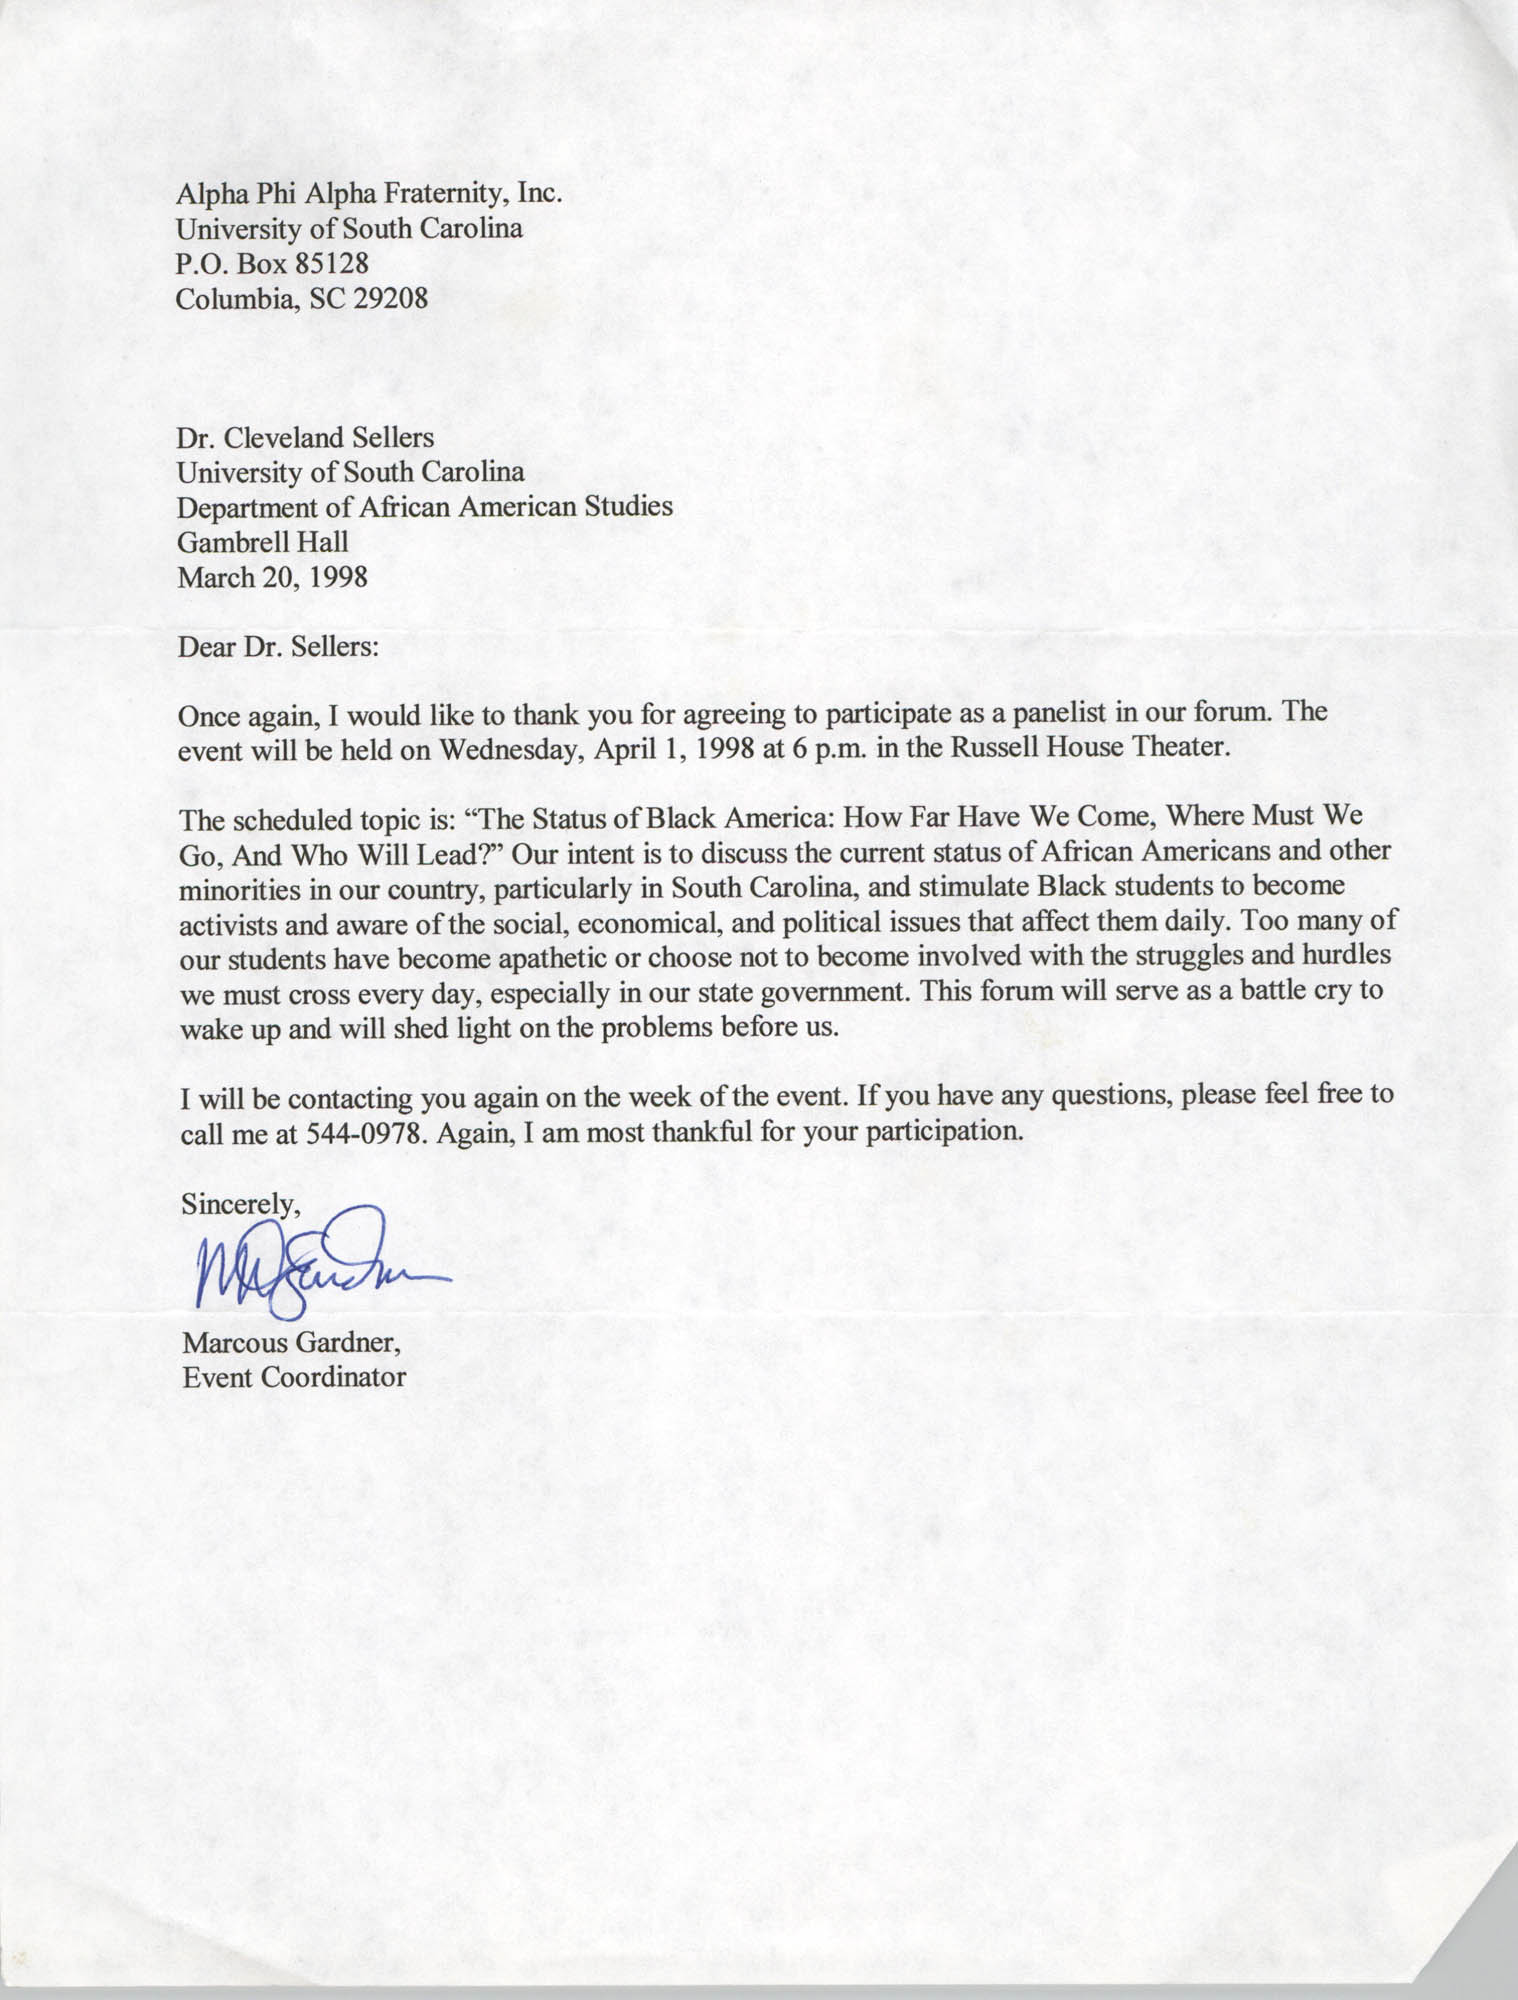 Letter from Marcous Gardner to Cleveland Sellers, March 20, 1998